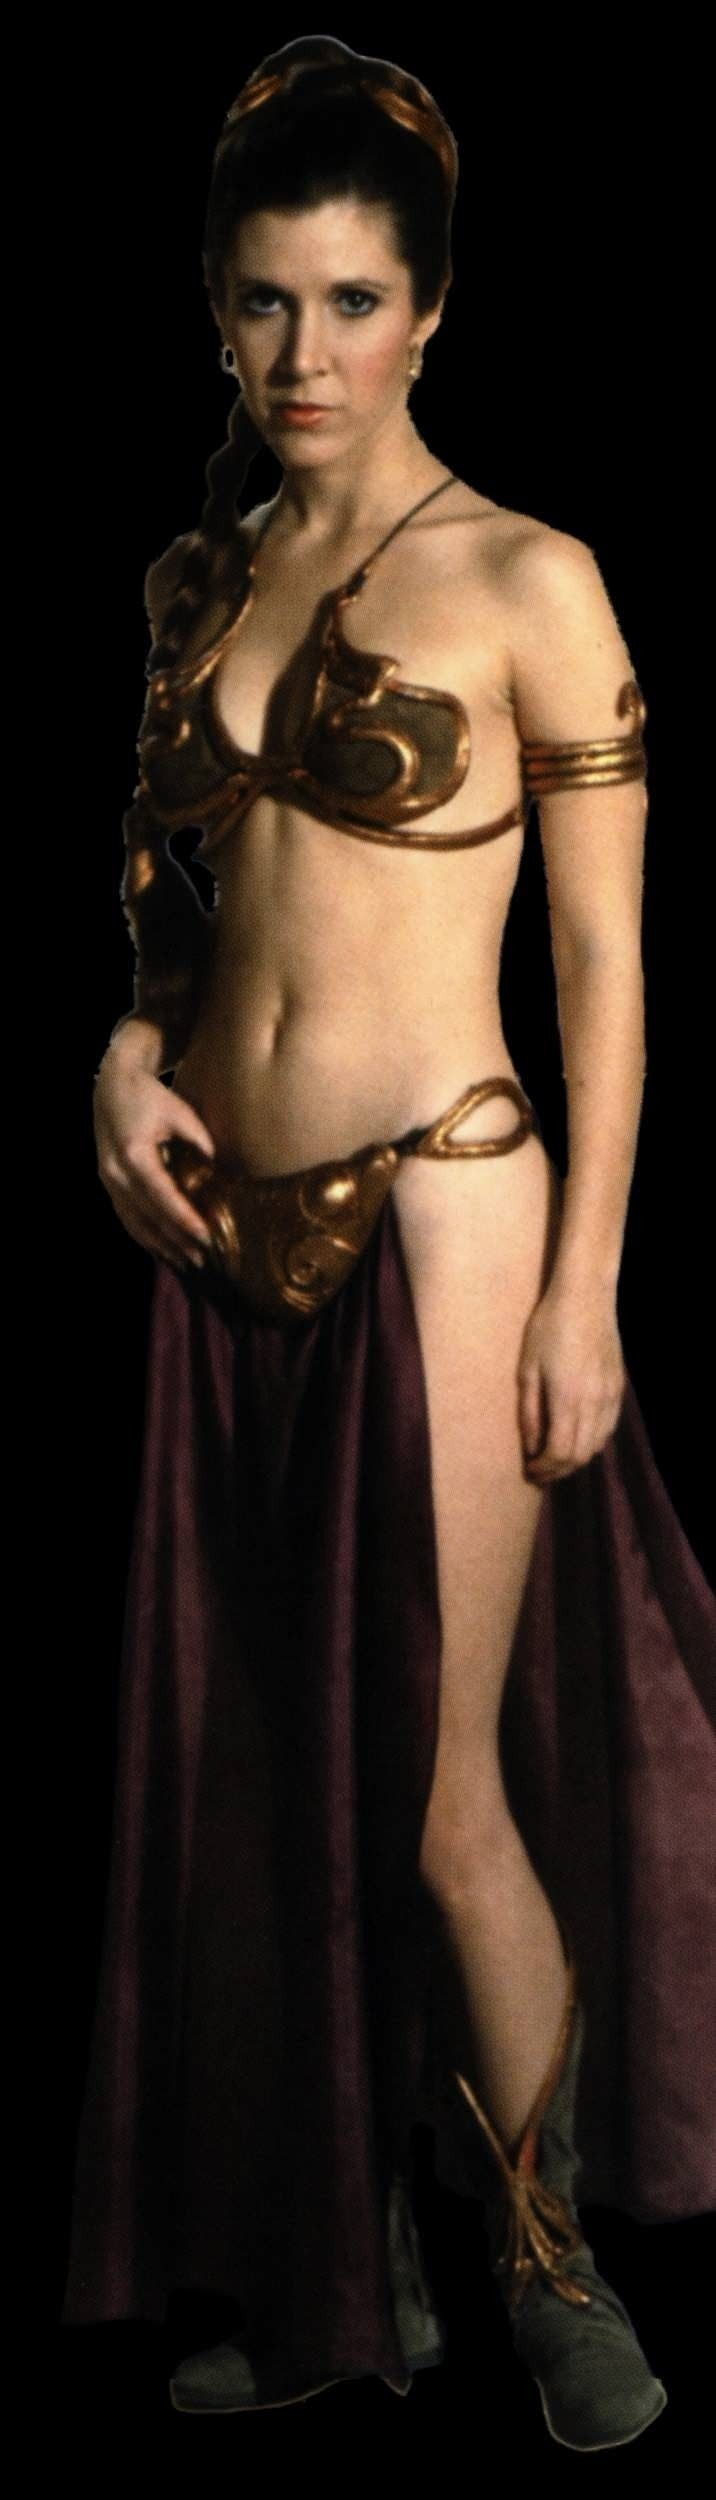 Photo of Slave Leia for fans of Princess Leia Organa Solo Skywalker.